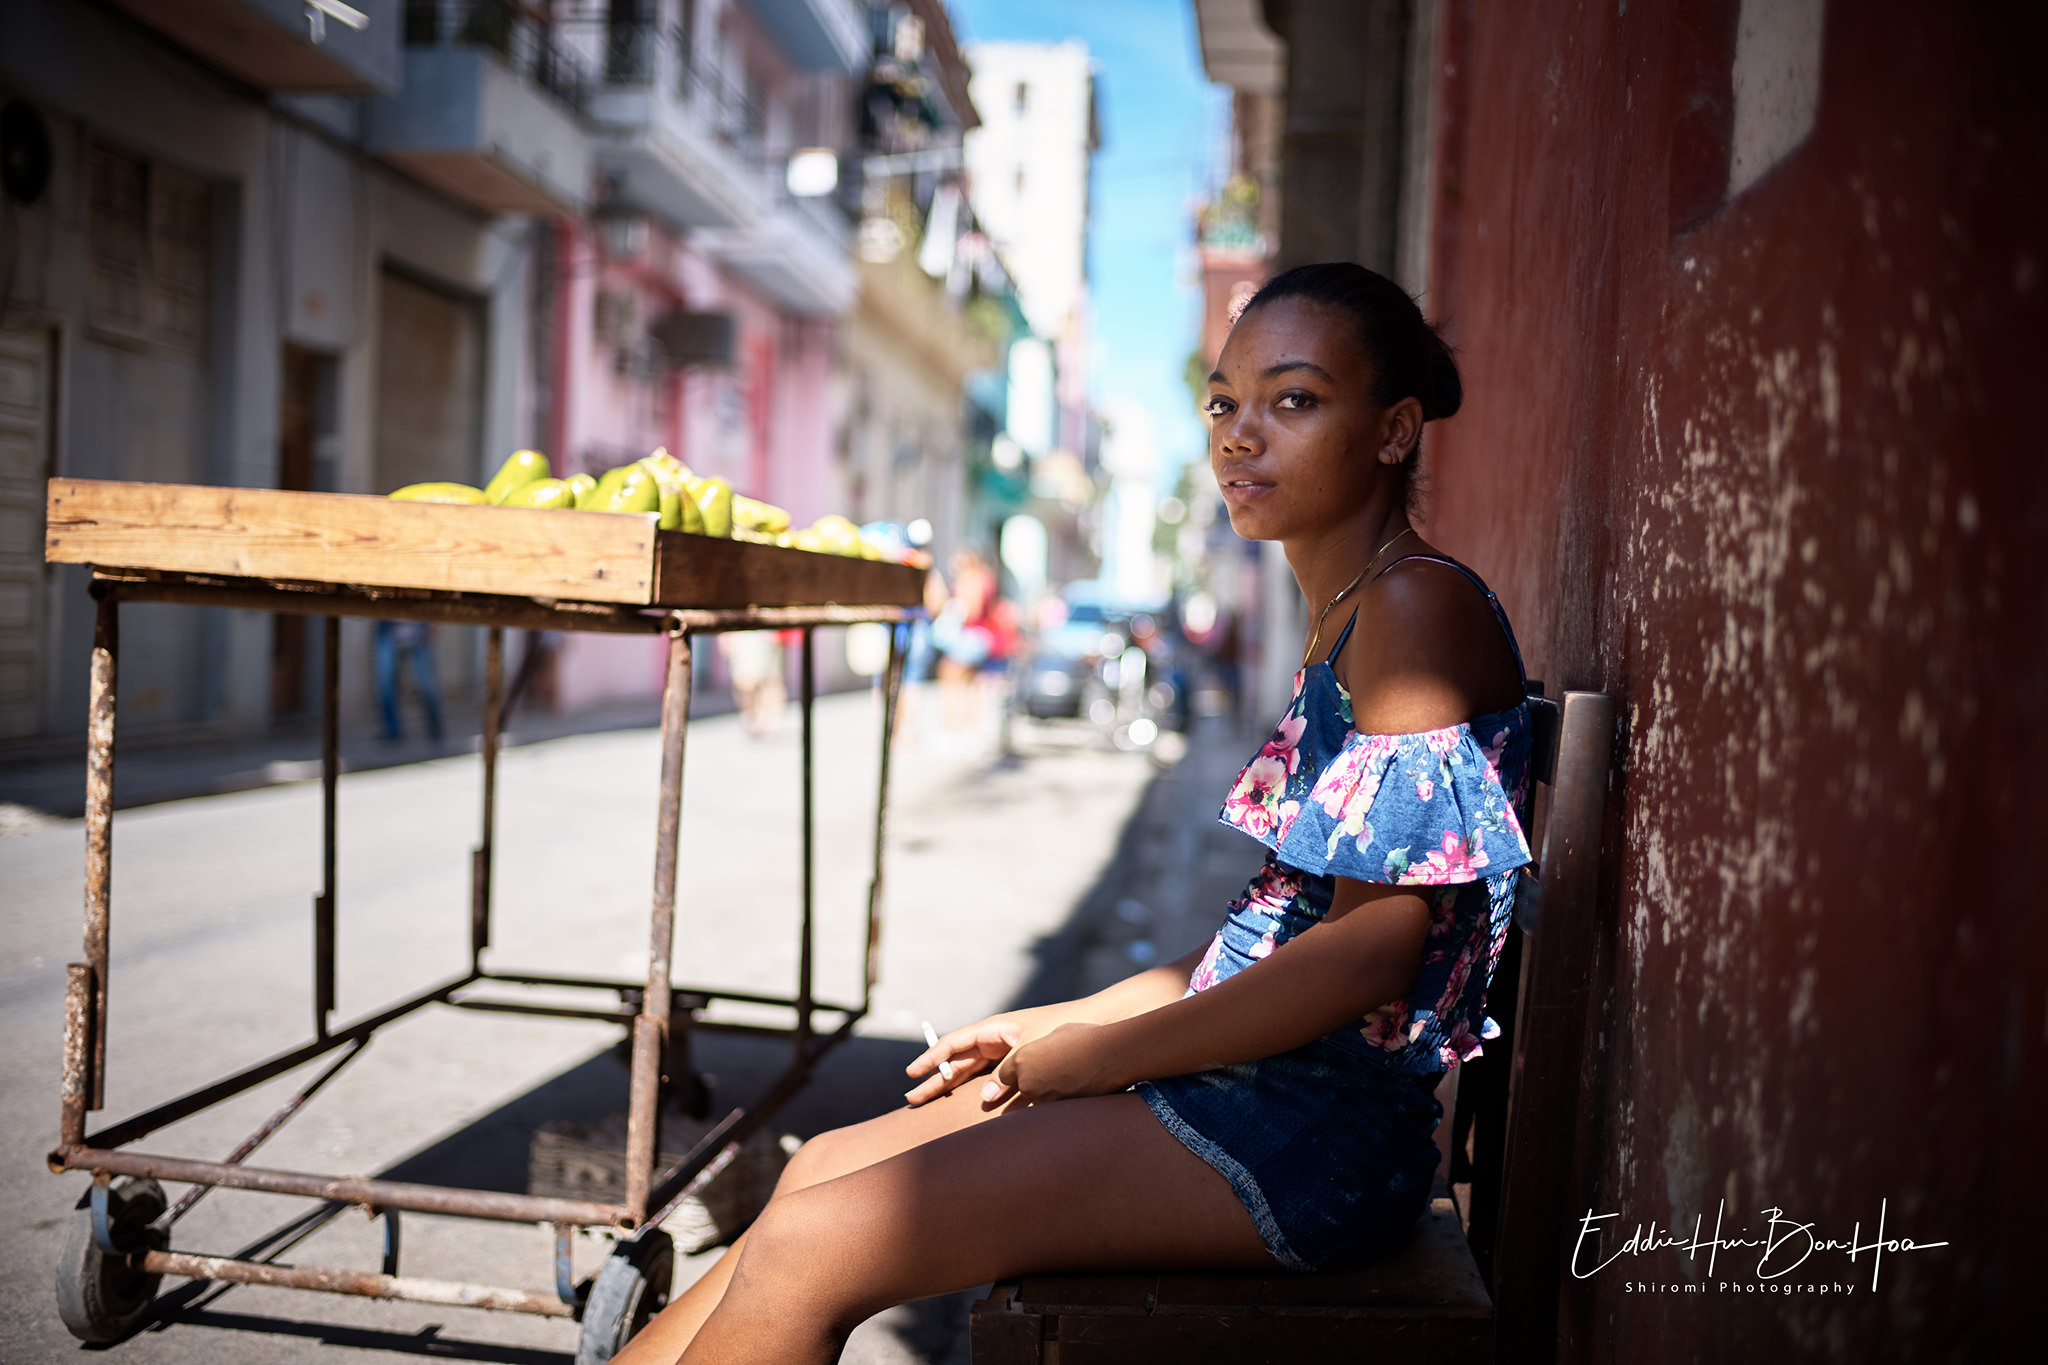 Chilling out in Havana